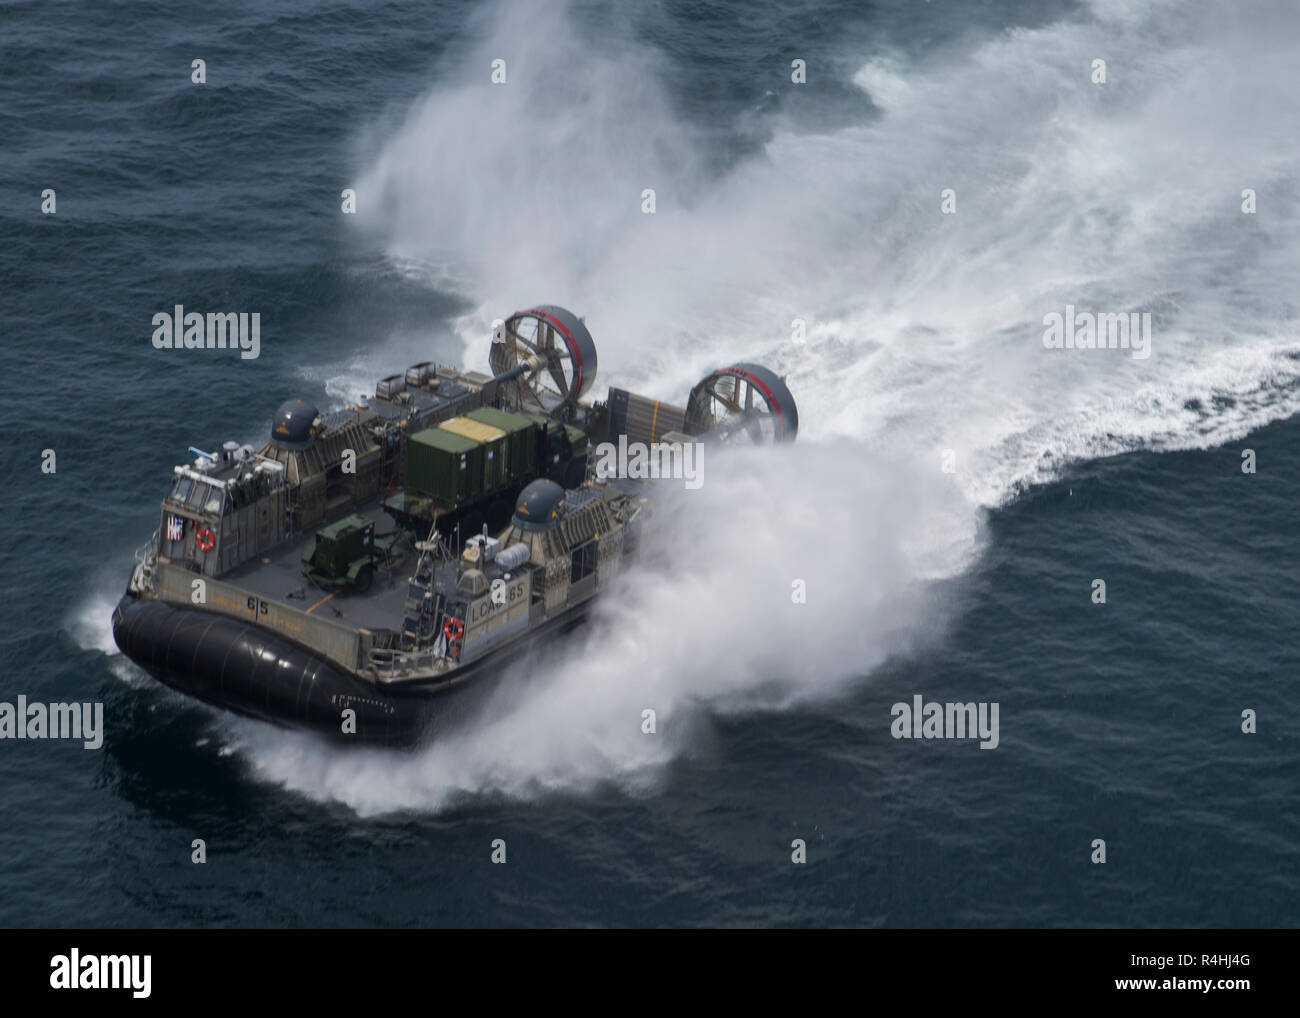 The U.S. Navy Landing Craft, Air Cushioned hovercraft transports Marines and equipment with Special Purpose Marine Air-Ground Task Force - Peru during a humanitarian assistance and disaster relief exercise off of the coast of Chorrillos Beach near Lima, Peru, Nov. 24, 2018.  SPMAGTF-Peru's goal is to demonstrate humanitarian assistance and disaster relief response by bringing together the capabilities of U.S. Marines and sailors aboard the Somerset and Peruvian naval forces as a multinational maritime task force. The integrated mission is part of U.S. Southern Command's Enduring Promise initia Stock Photo